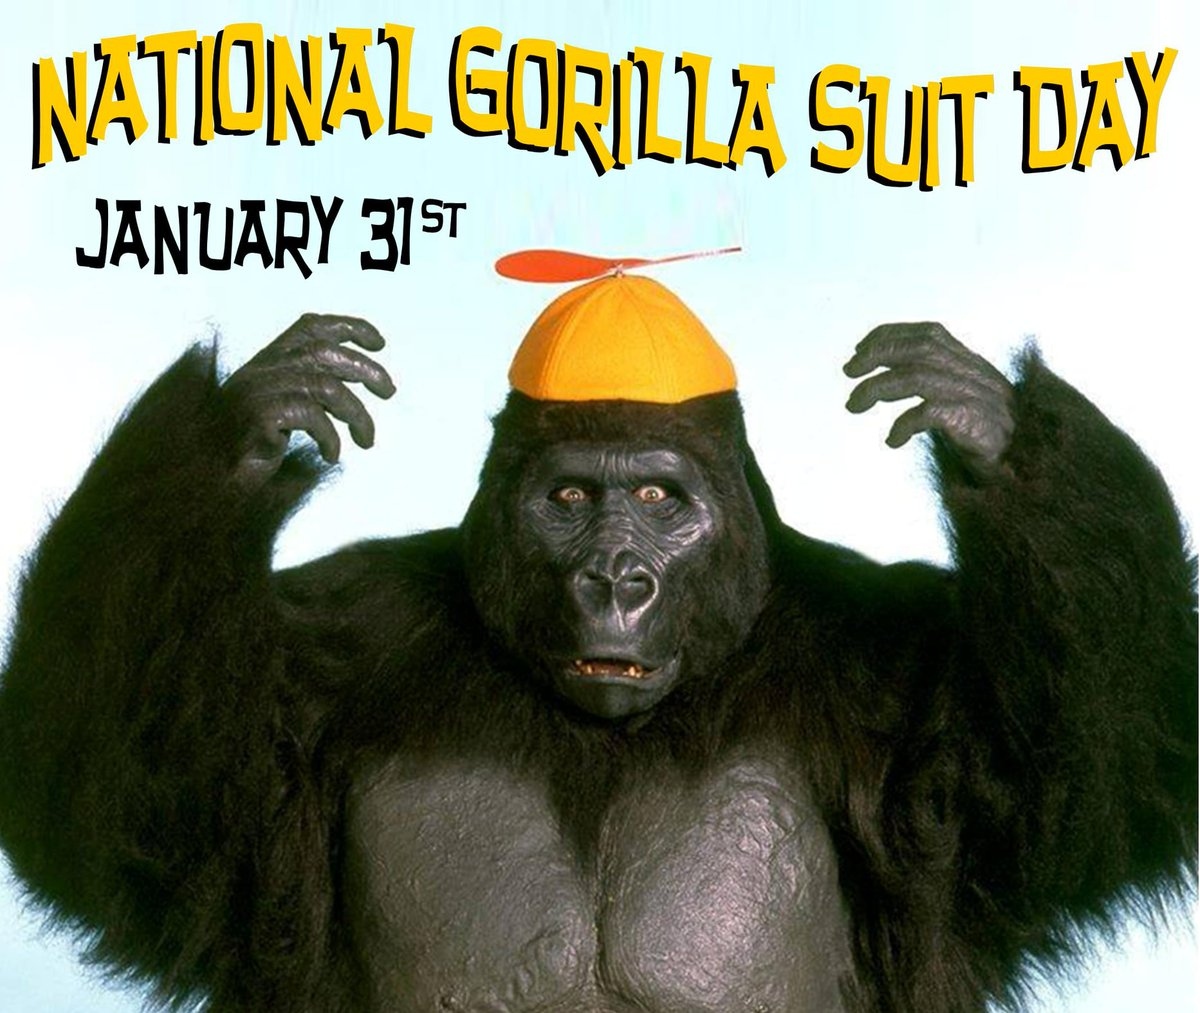 Its finally here! Its National Gorilla Suit Day! Wear your suit with pride! #nationalgorillasuitday